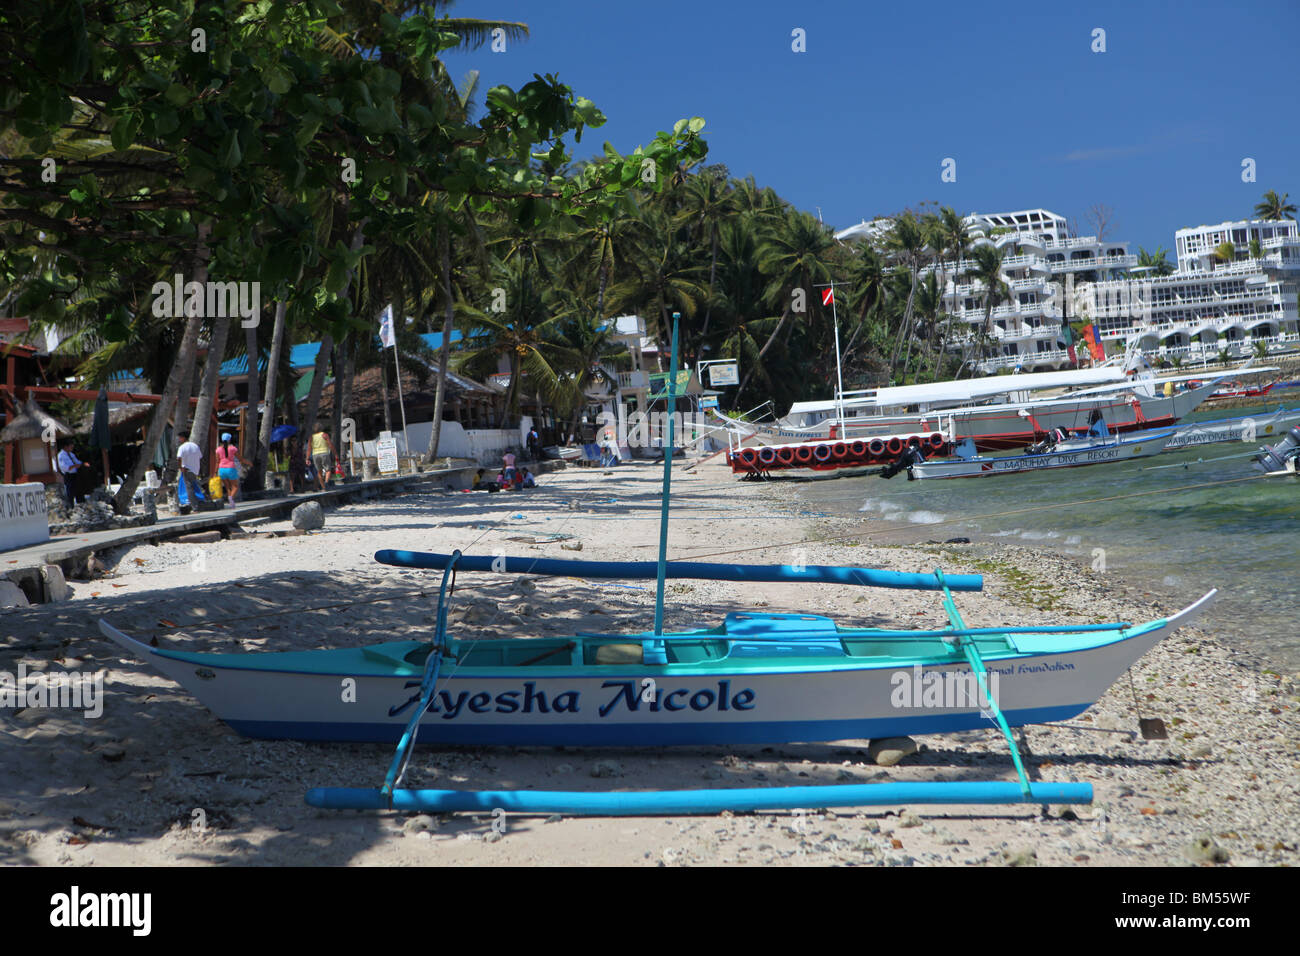 Small La Laguna Beach in Puerto Galera, located on the north of Mindoro Occidental in the Philippines. Stock Photo